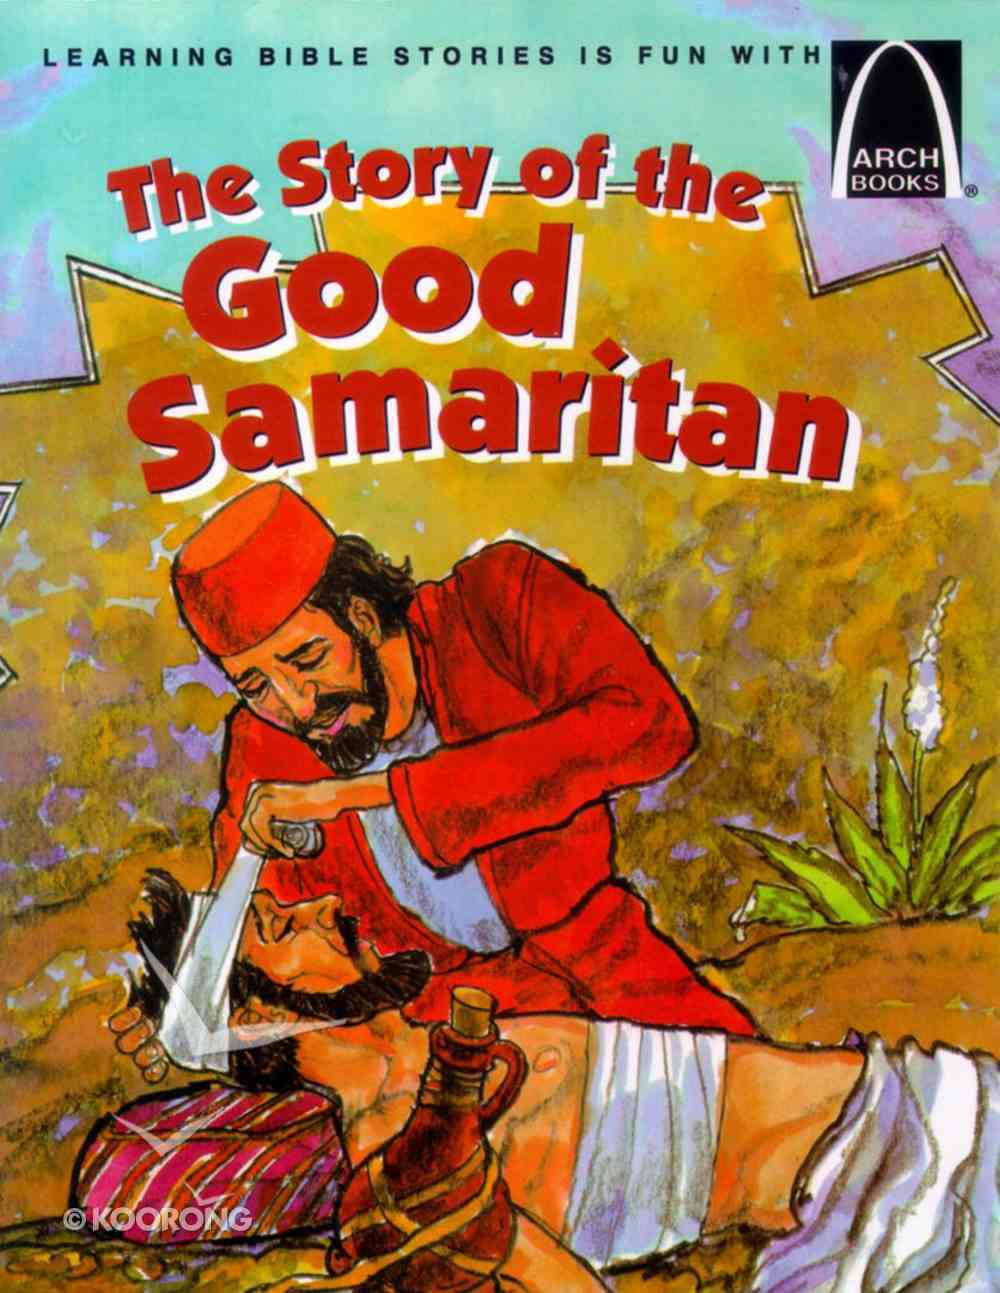 The Story of the Good Samaritan (Arch Books Series) Paperback